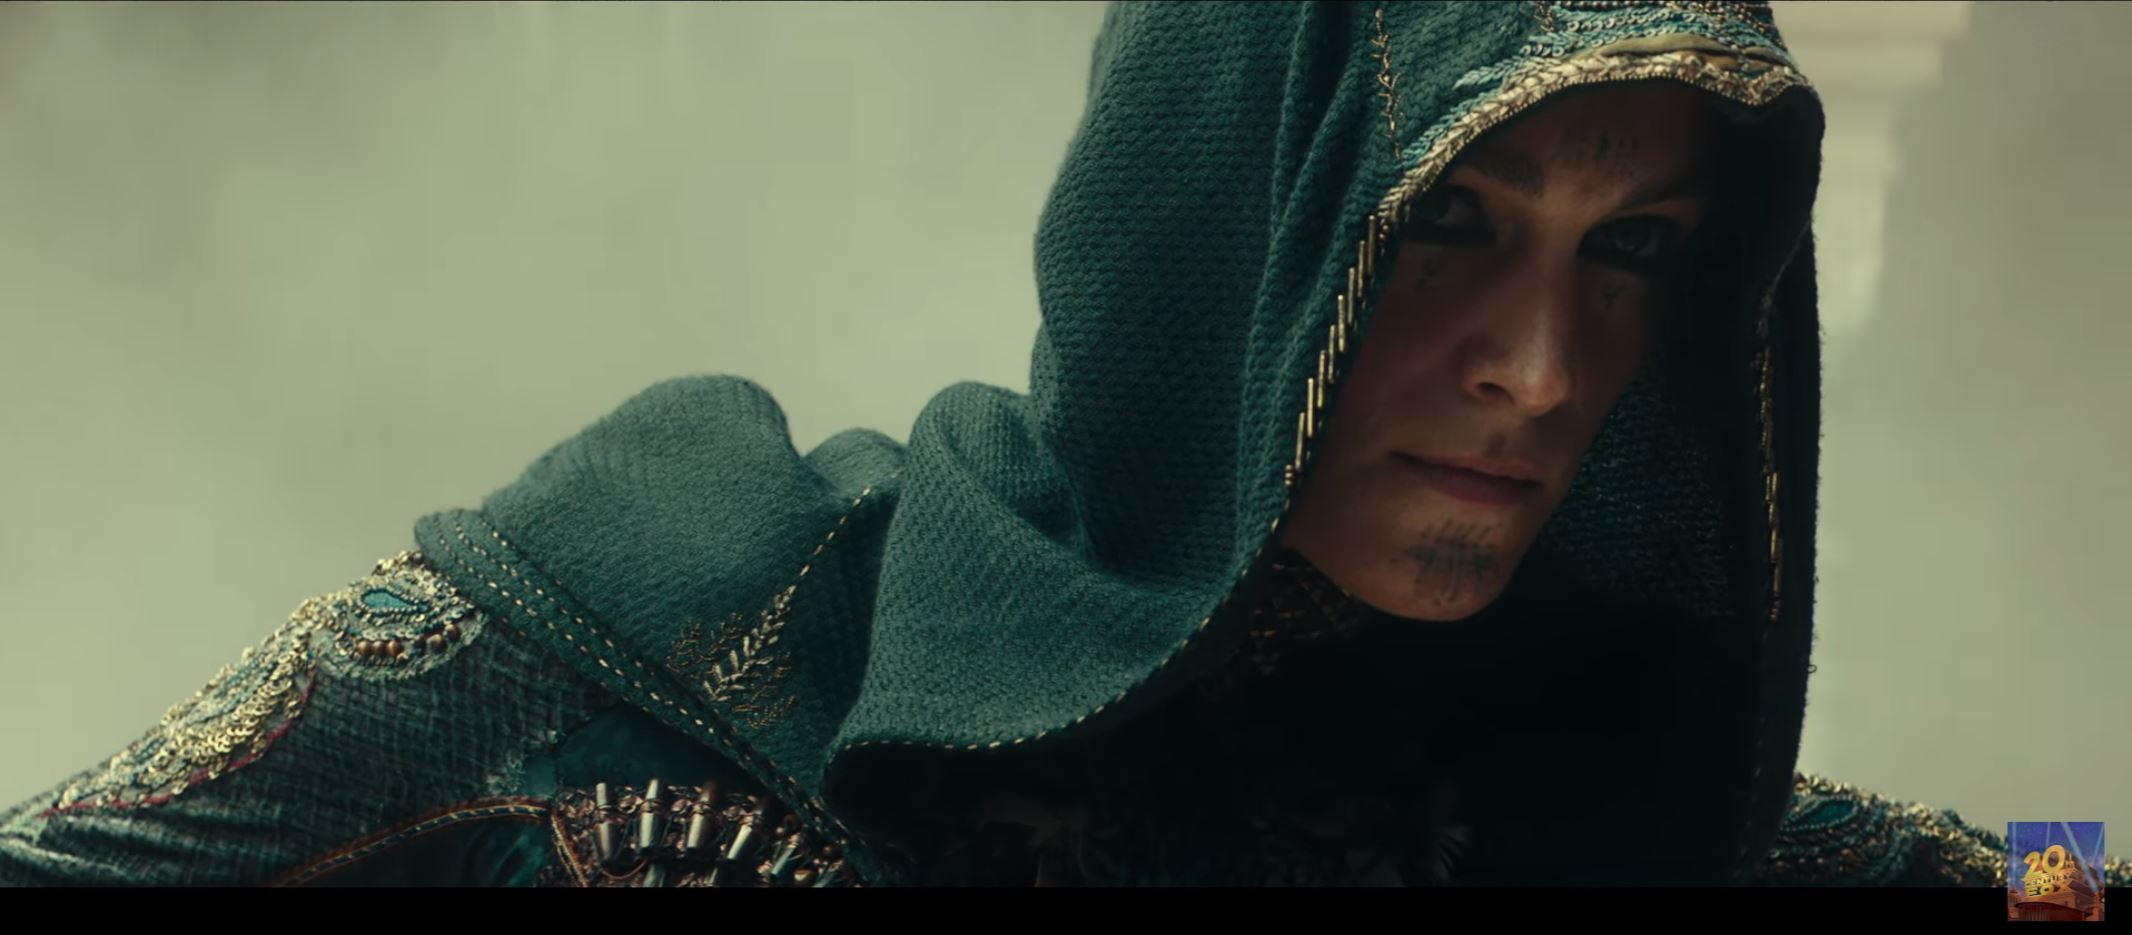 First Assassin's Creed Trailer Starring Michael Fassbender!